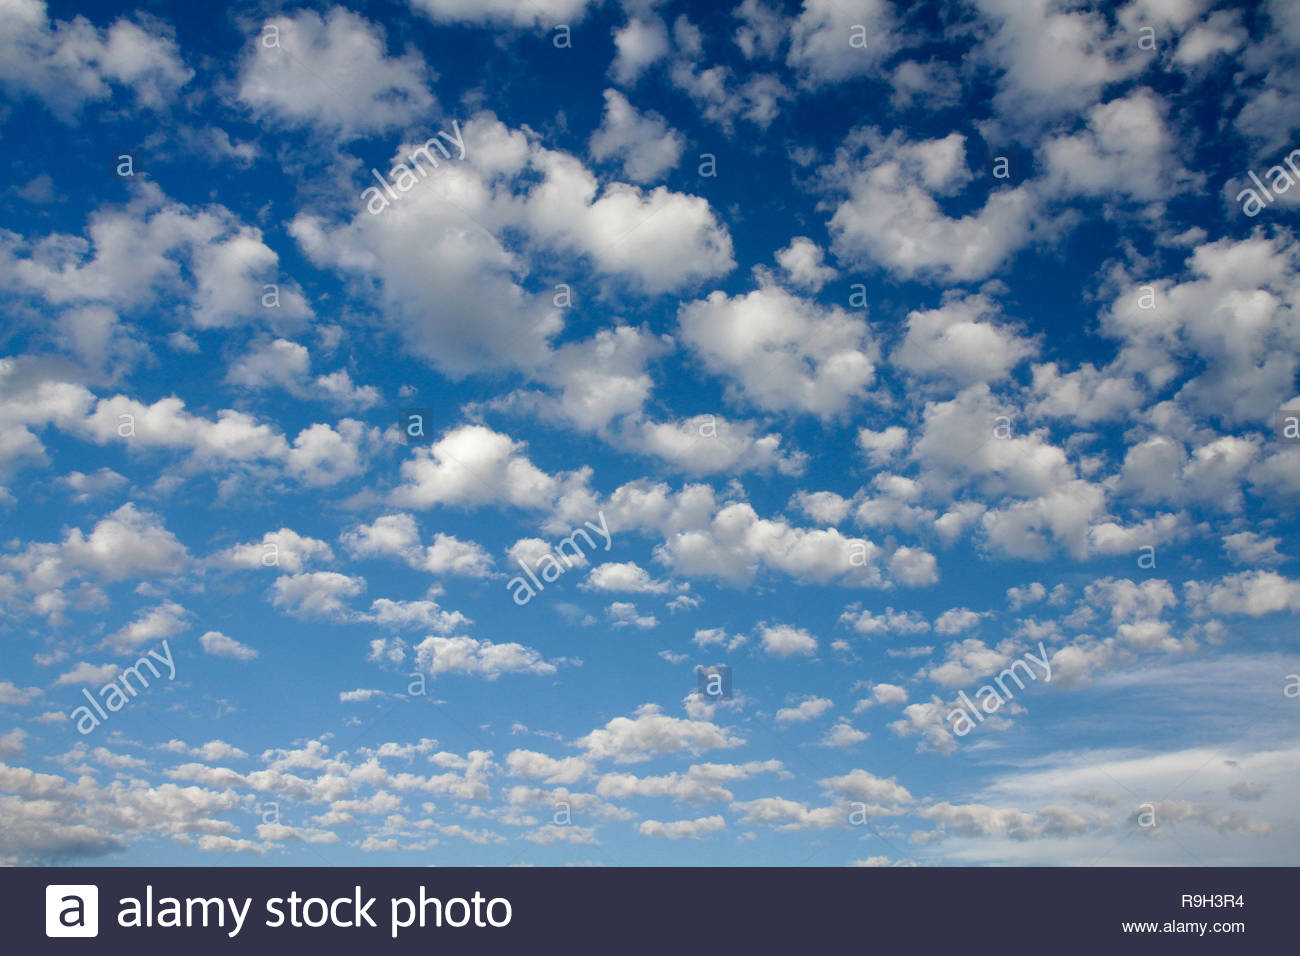 Cumulus clouds over Cascades Mountain, blue and white skyscape, Carpenter Mountain, HJ Andrews Forest, Willamette National Forest, Oregon, USA - Stock Image